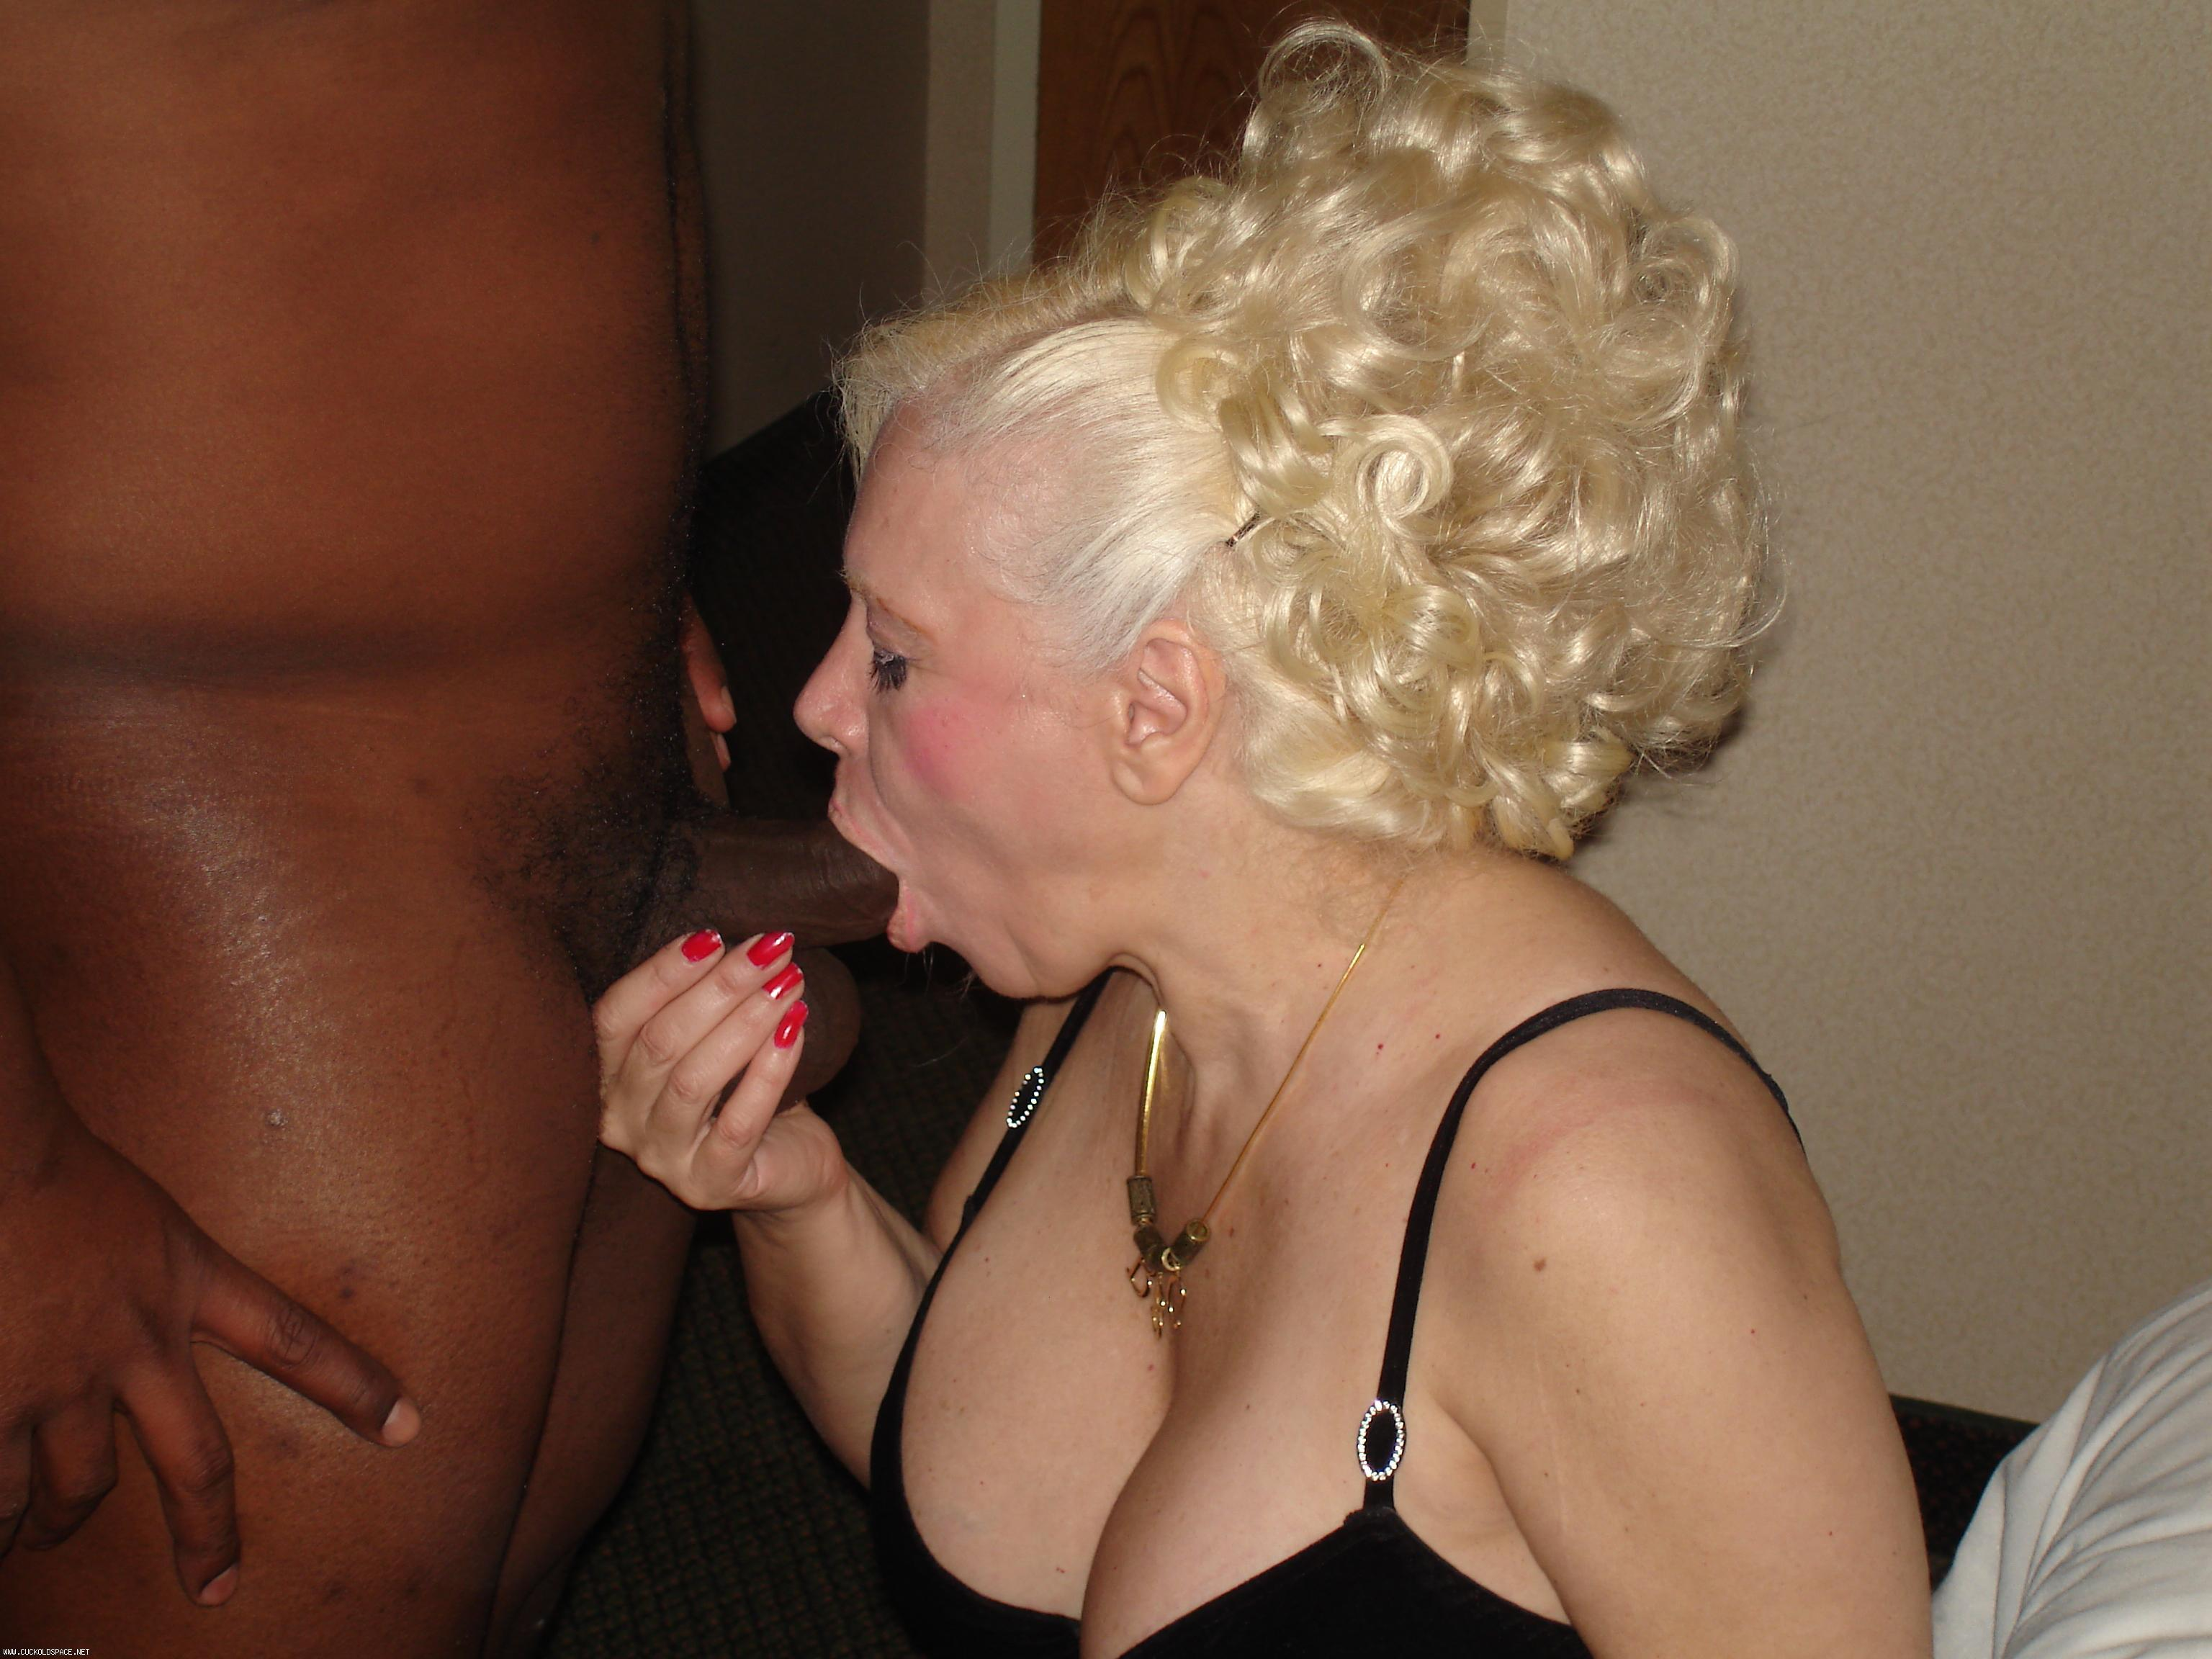 Cuckold creampie Cum cleaning service for cheating wife